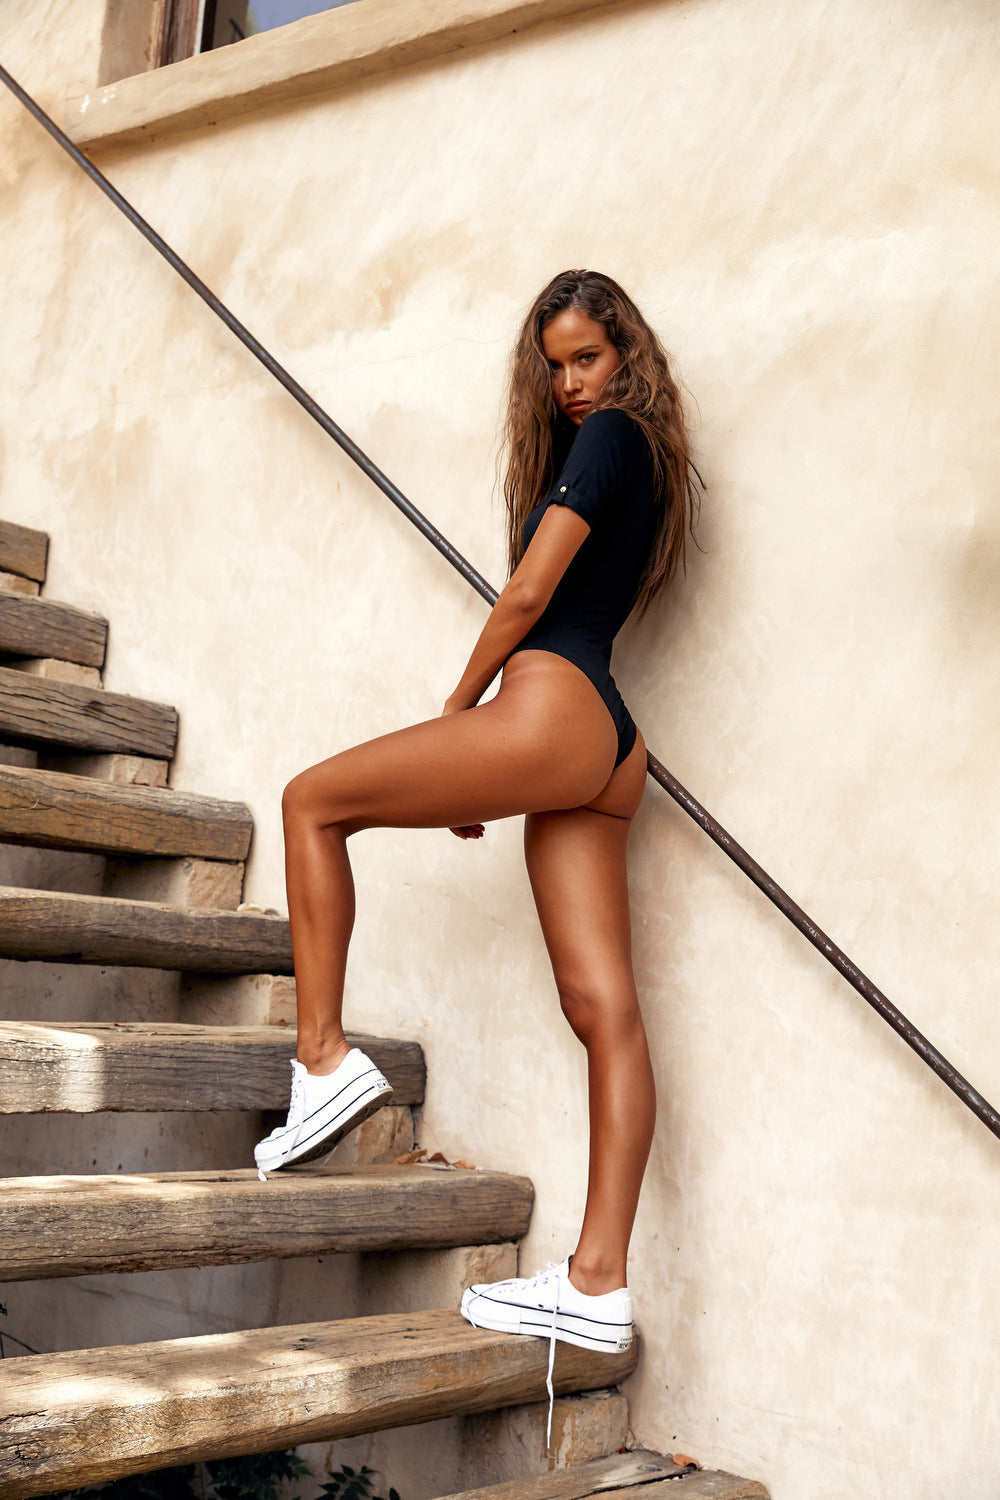 Isabelle Mathers wearing the IAM Black Short Sleeve Bodysuit & white sneakers while going up wooden stairs